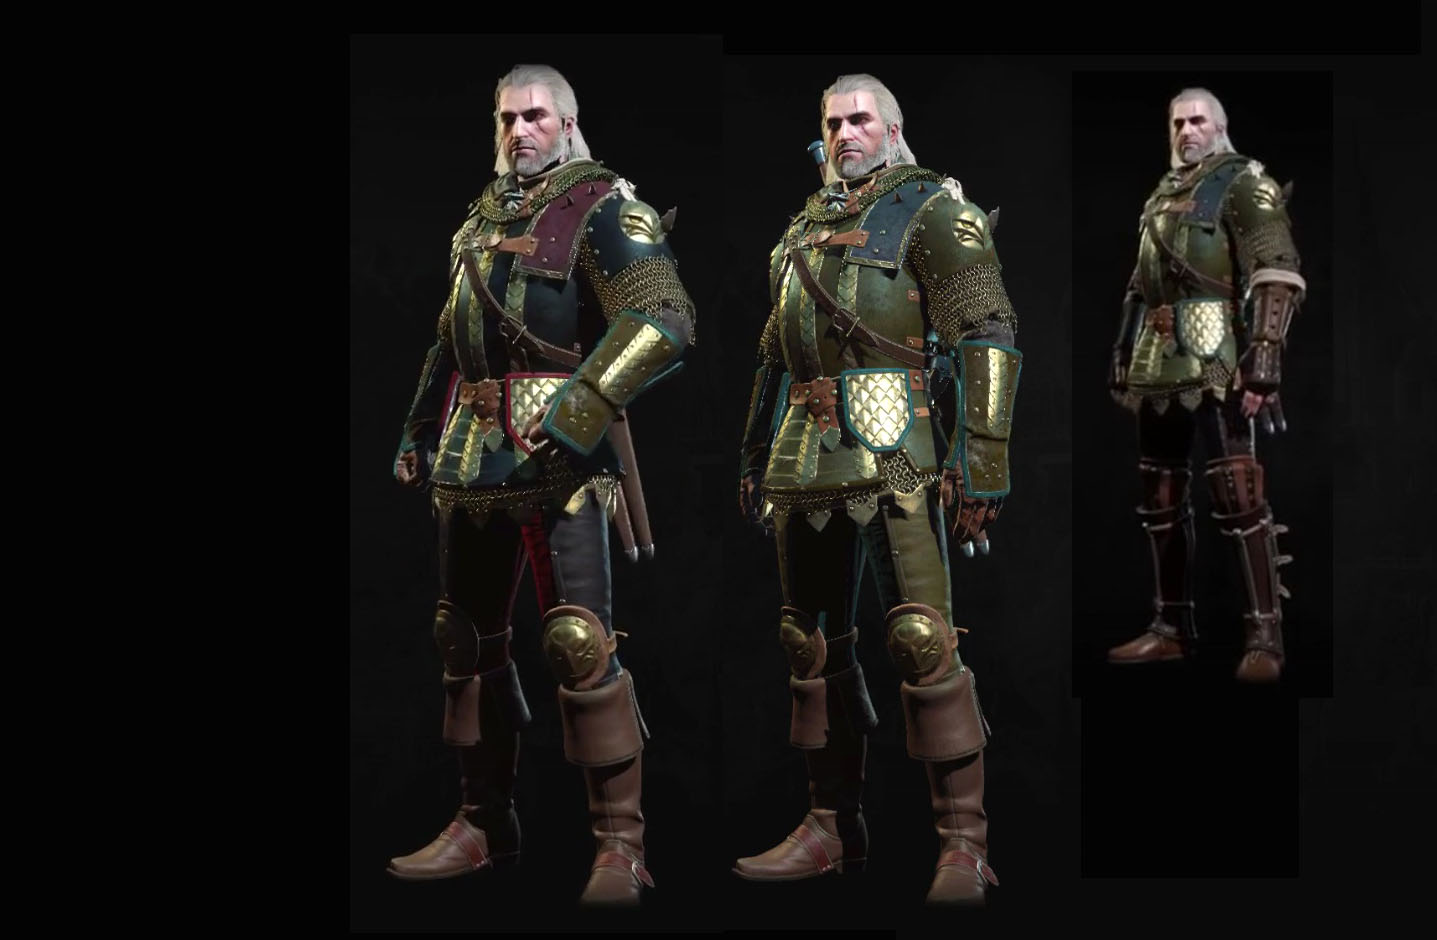 Grandmaster Griffin Armor Witcher 3 Blood And Wine